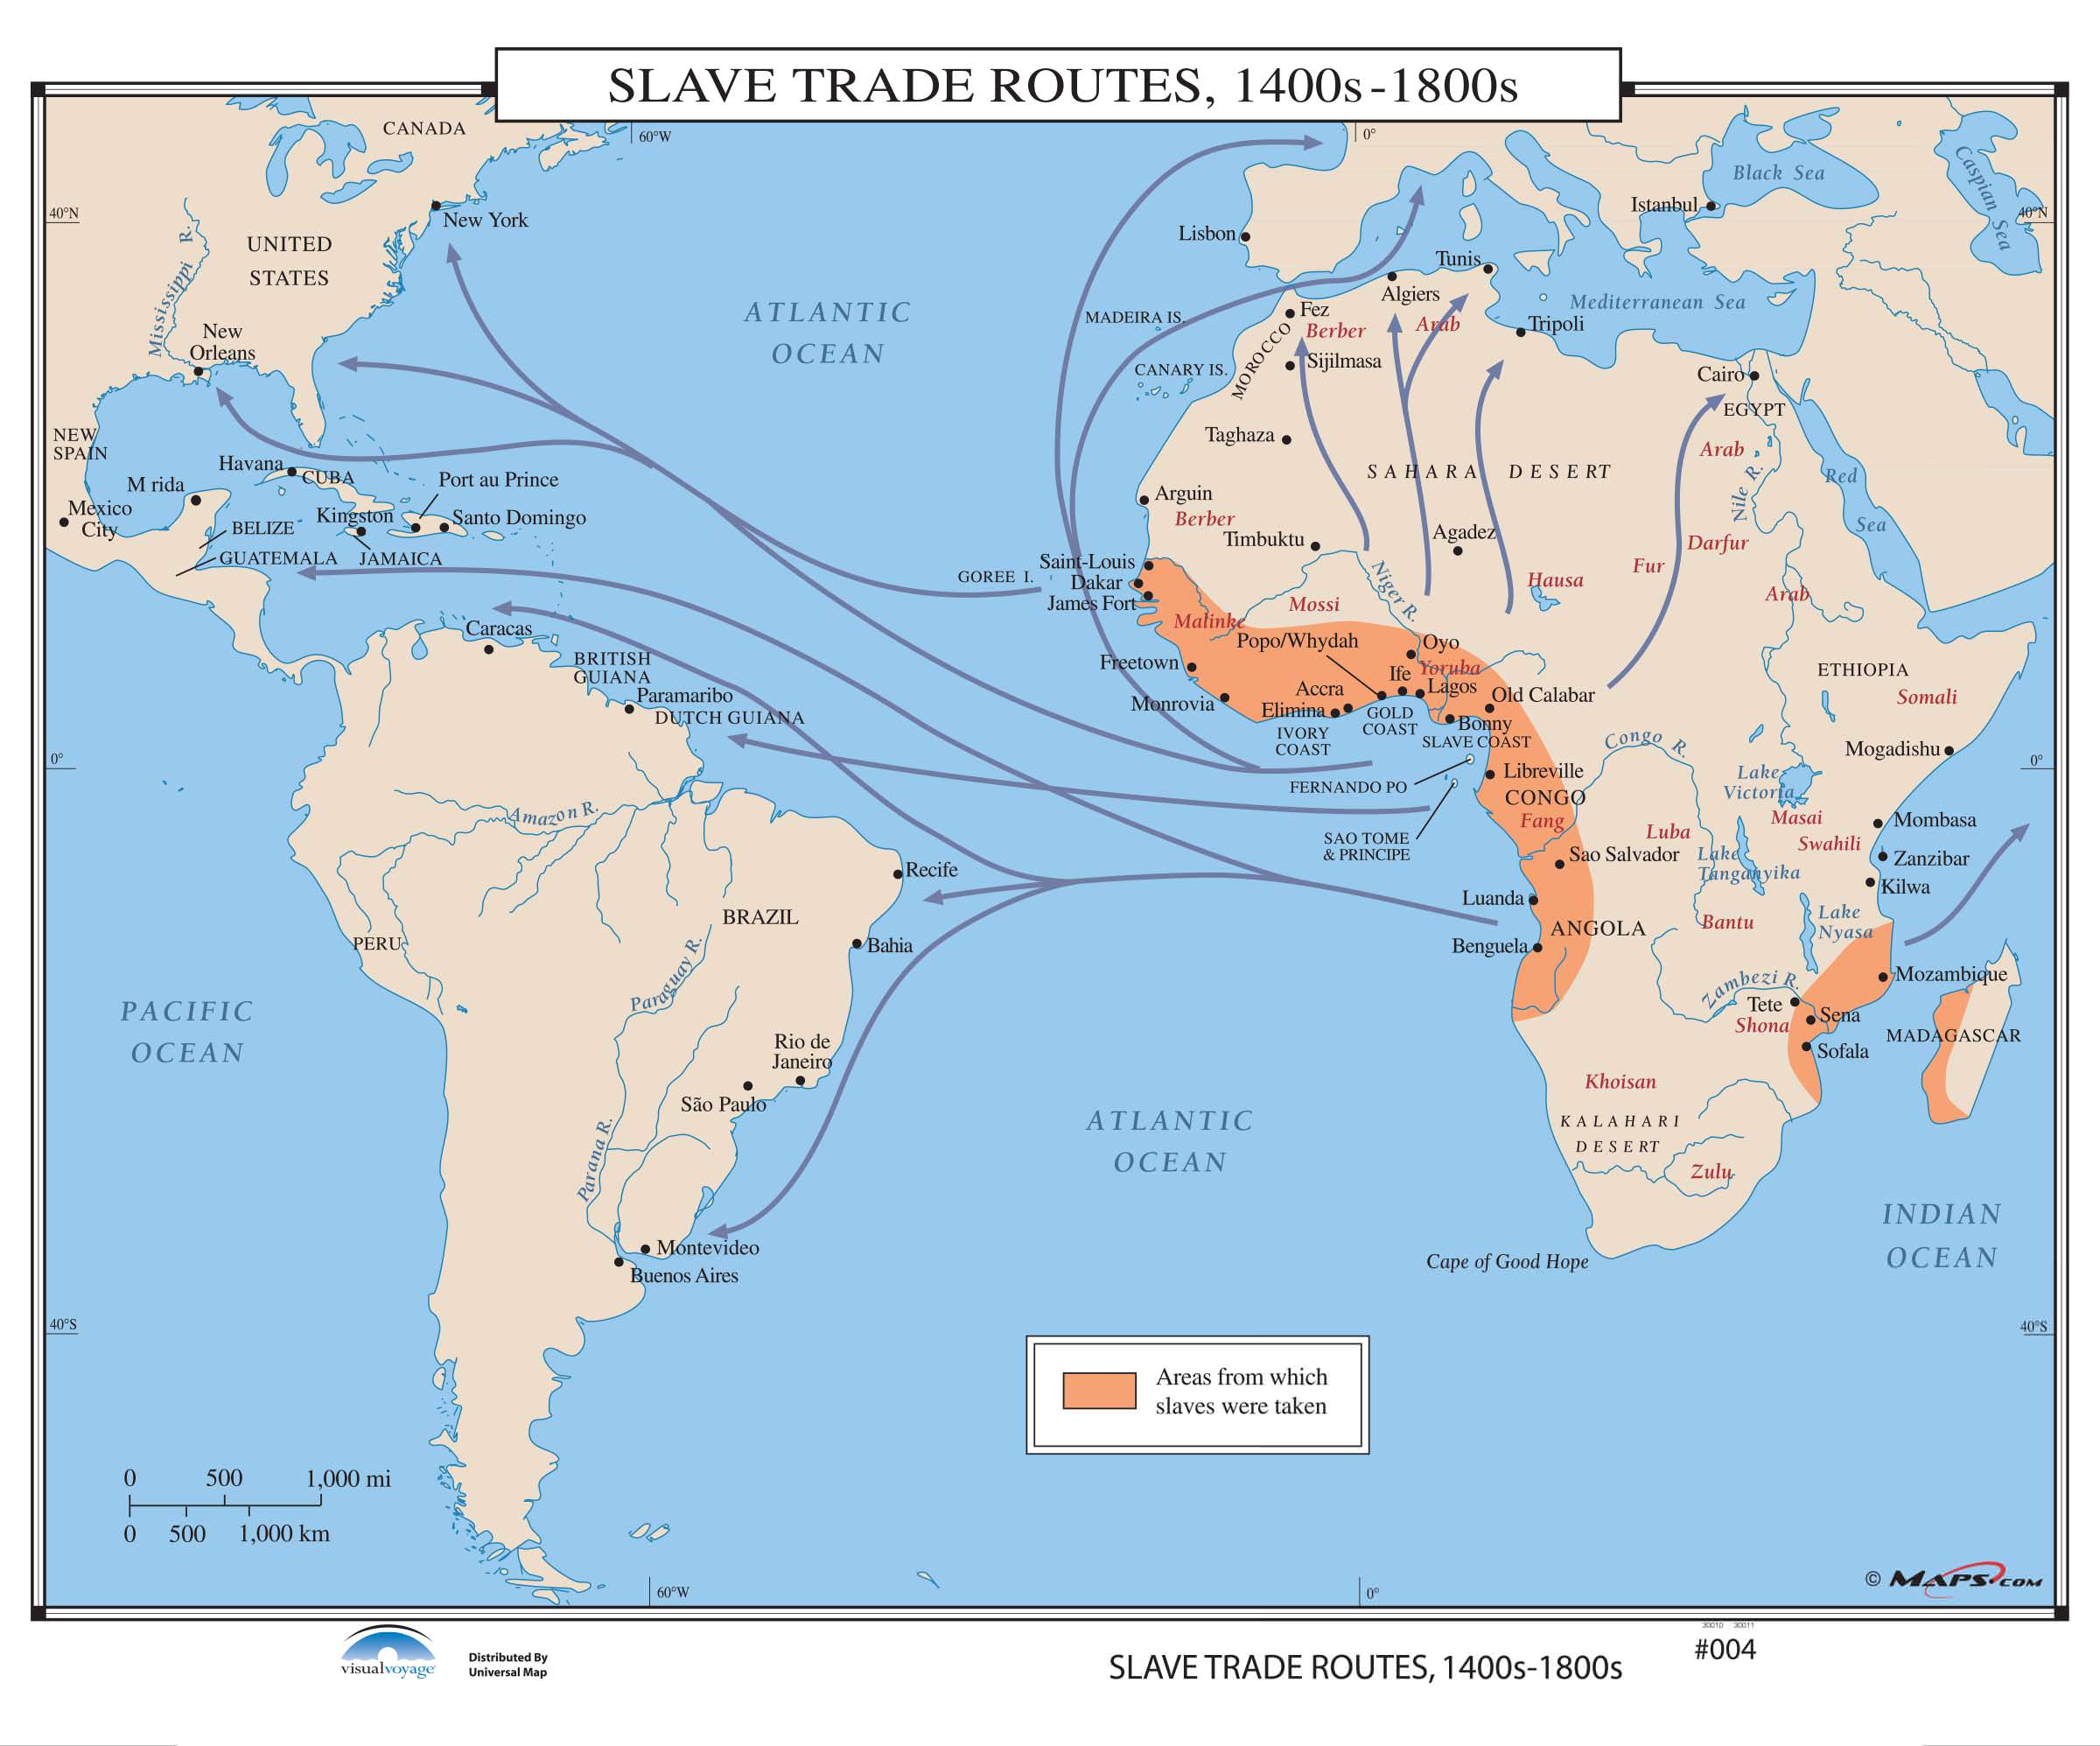 Slave Trade Map 004 Slave Trade Routes, 1400s 1800s – KAPPA MAP GROUP